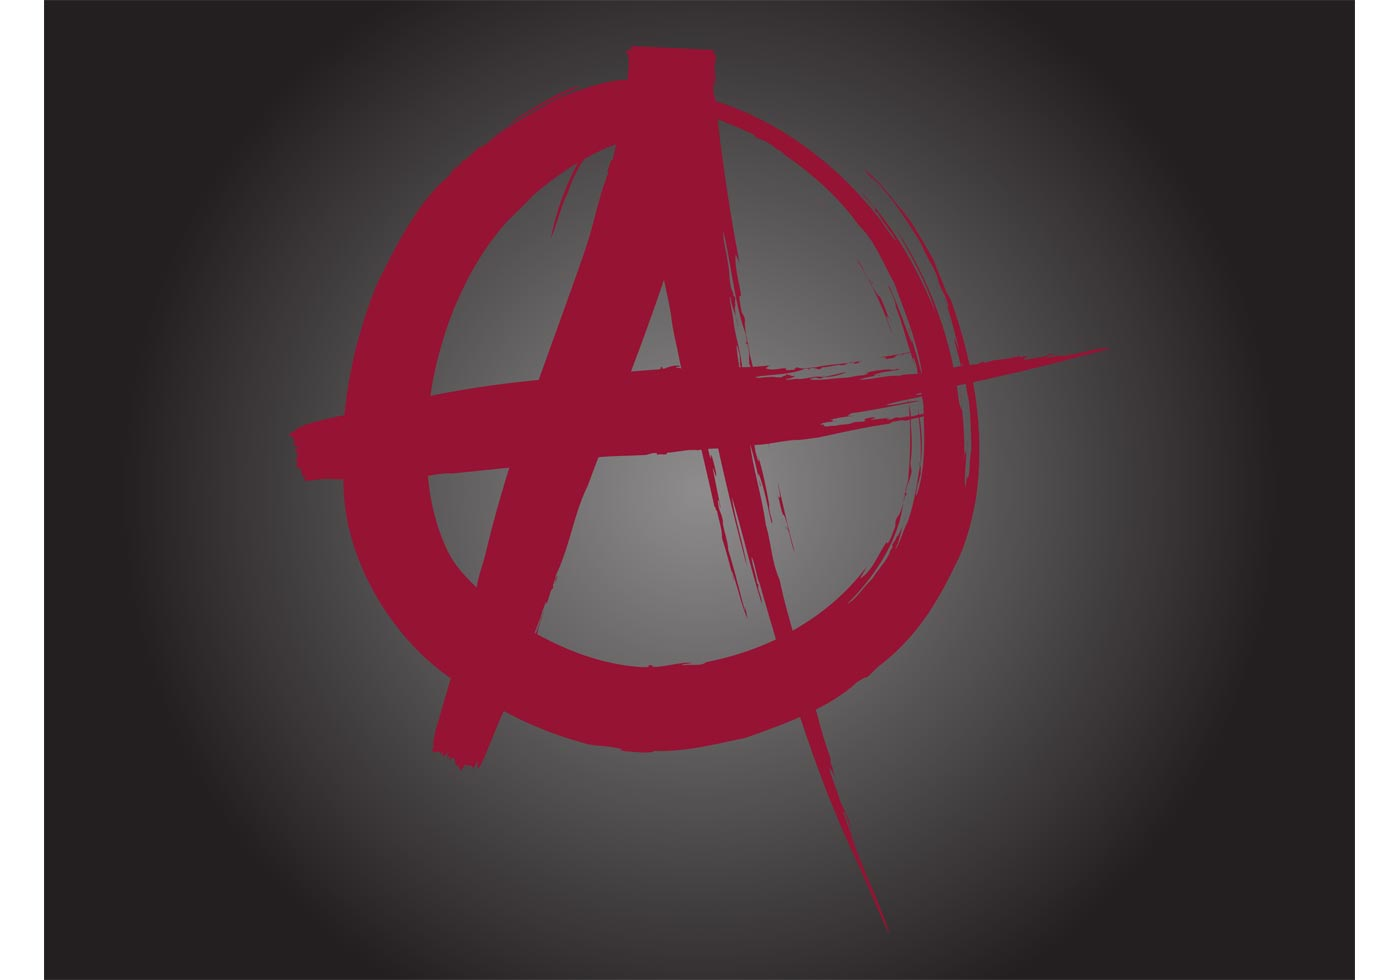 Anarchy Symbol Free Vector Art 29662 Free Downloads